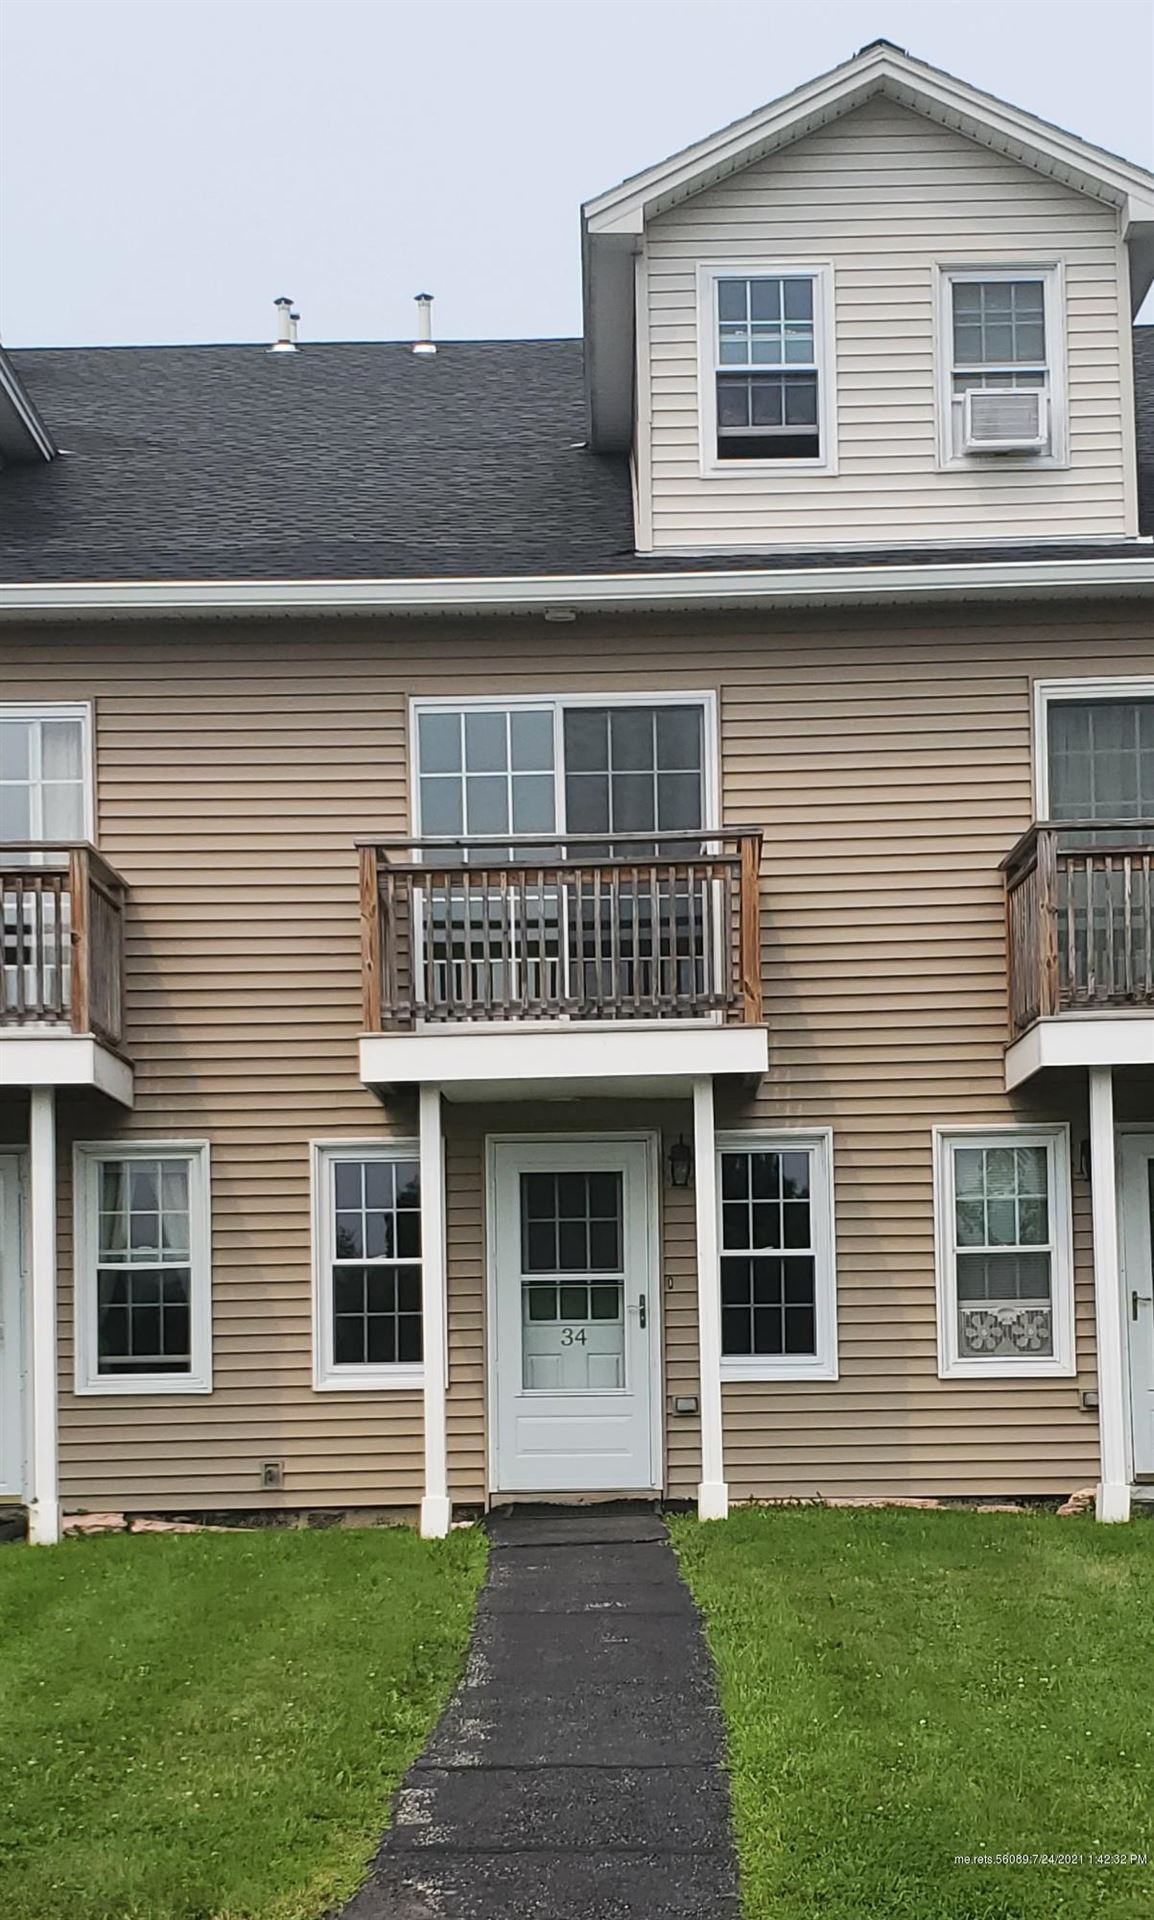 Photo for 35 Mathews Avenue #34, Waterville, ME 04901 (MLS # 1502109)